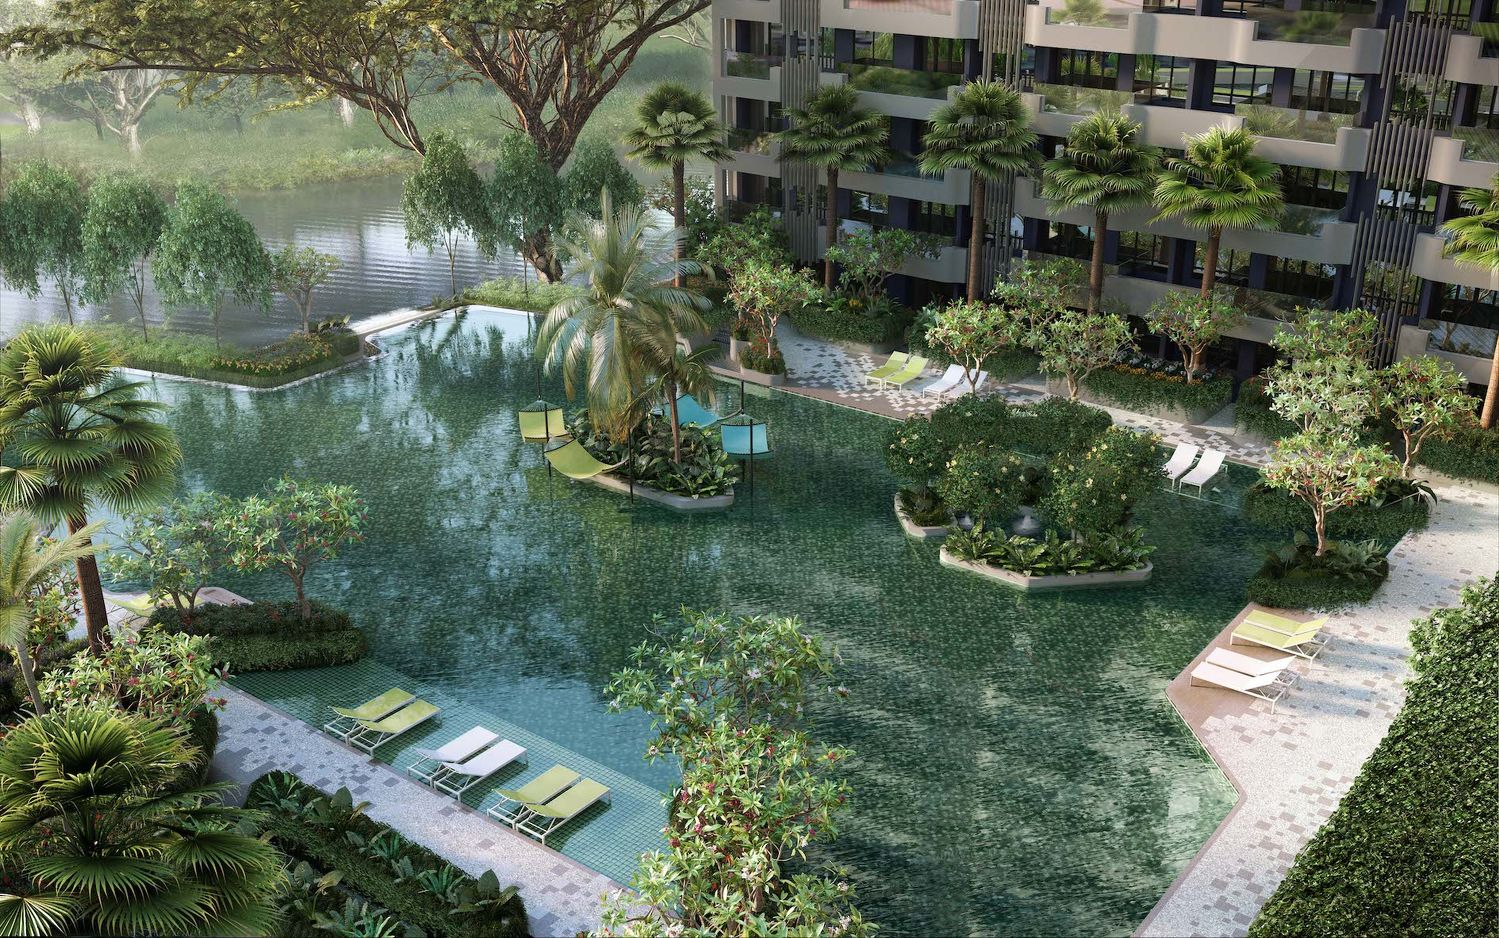 EDGEPROP SINGAPORE - The main pool of The Tre Ver, which has a 200m frontage of Kallang River (Picture: UOL) - EDGEPROP SINGAPORE